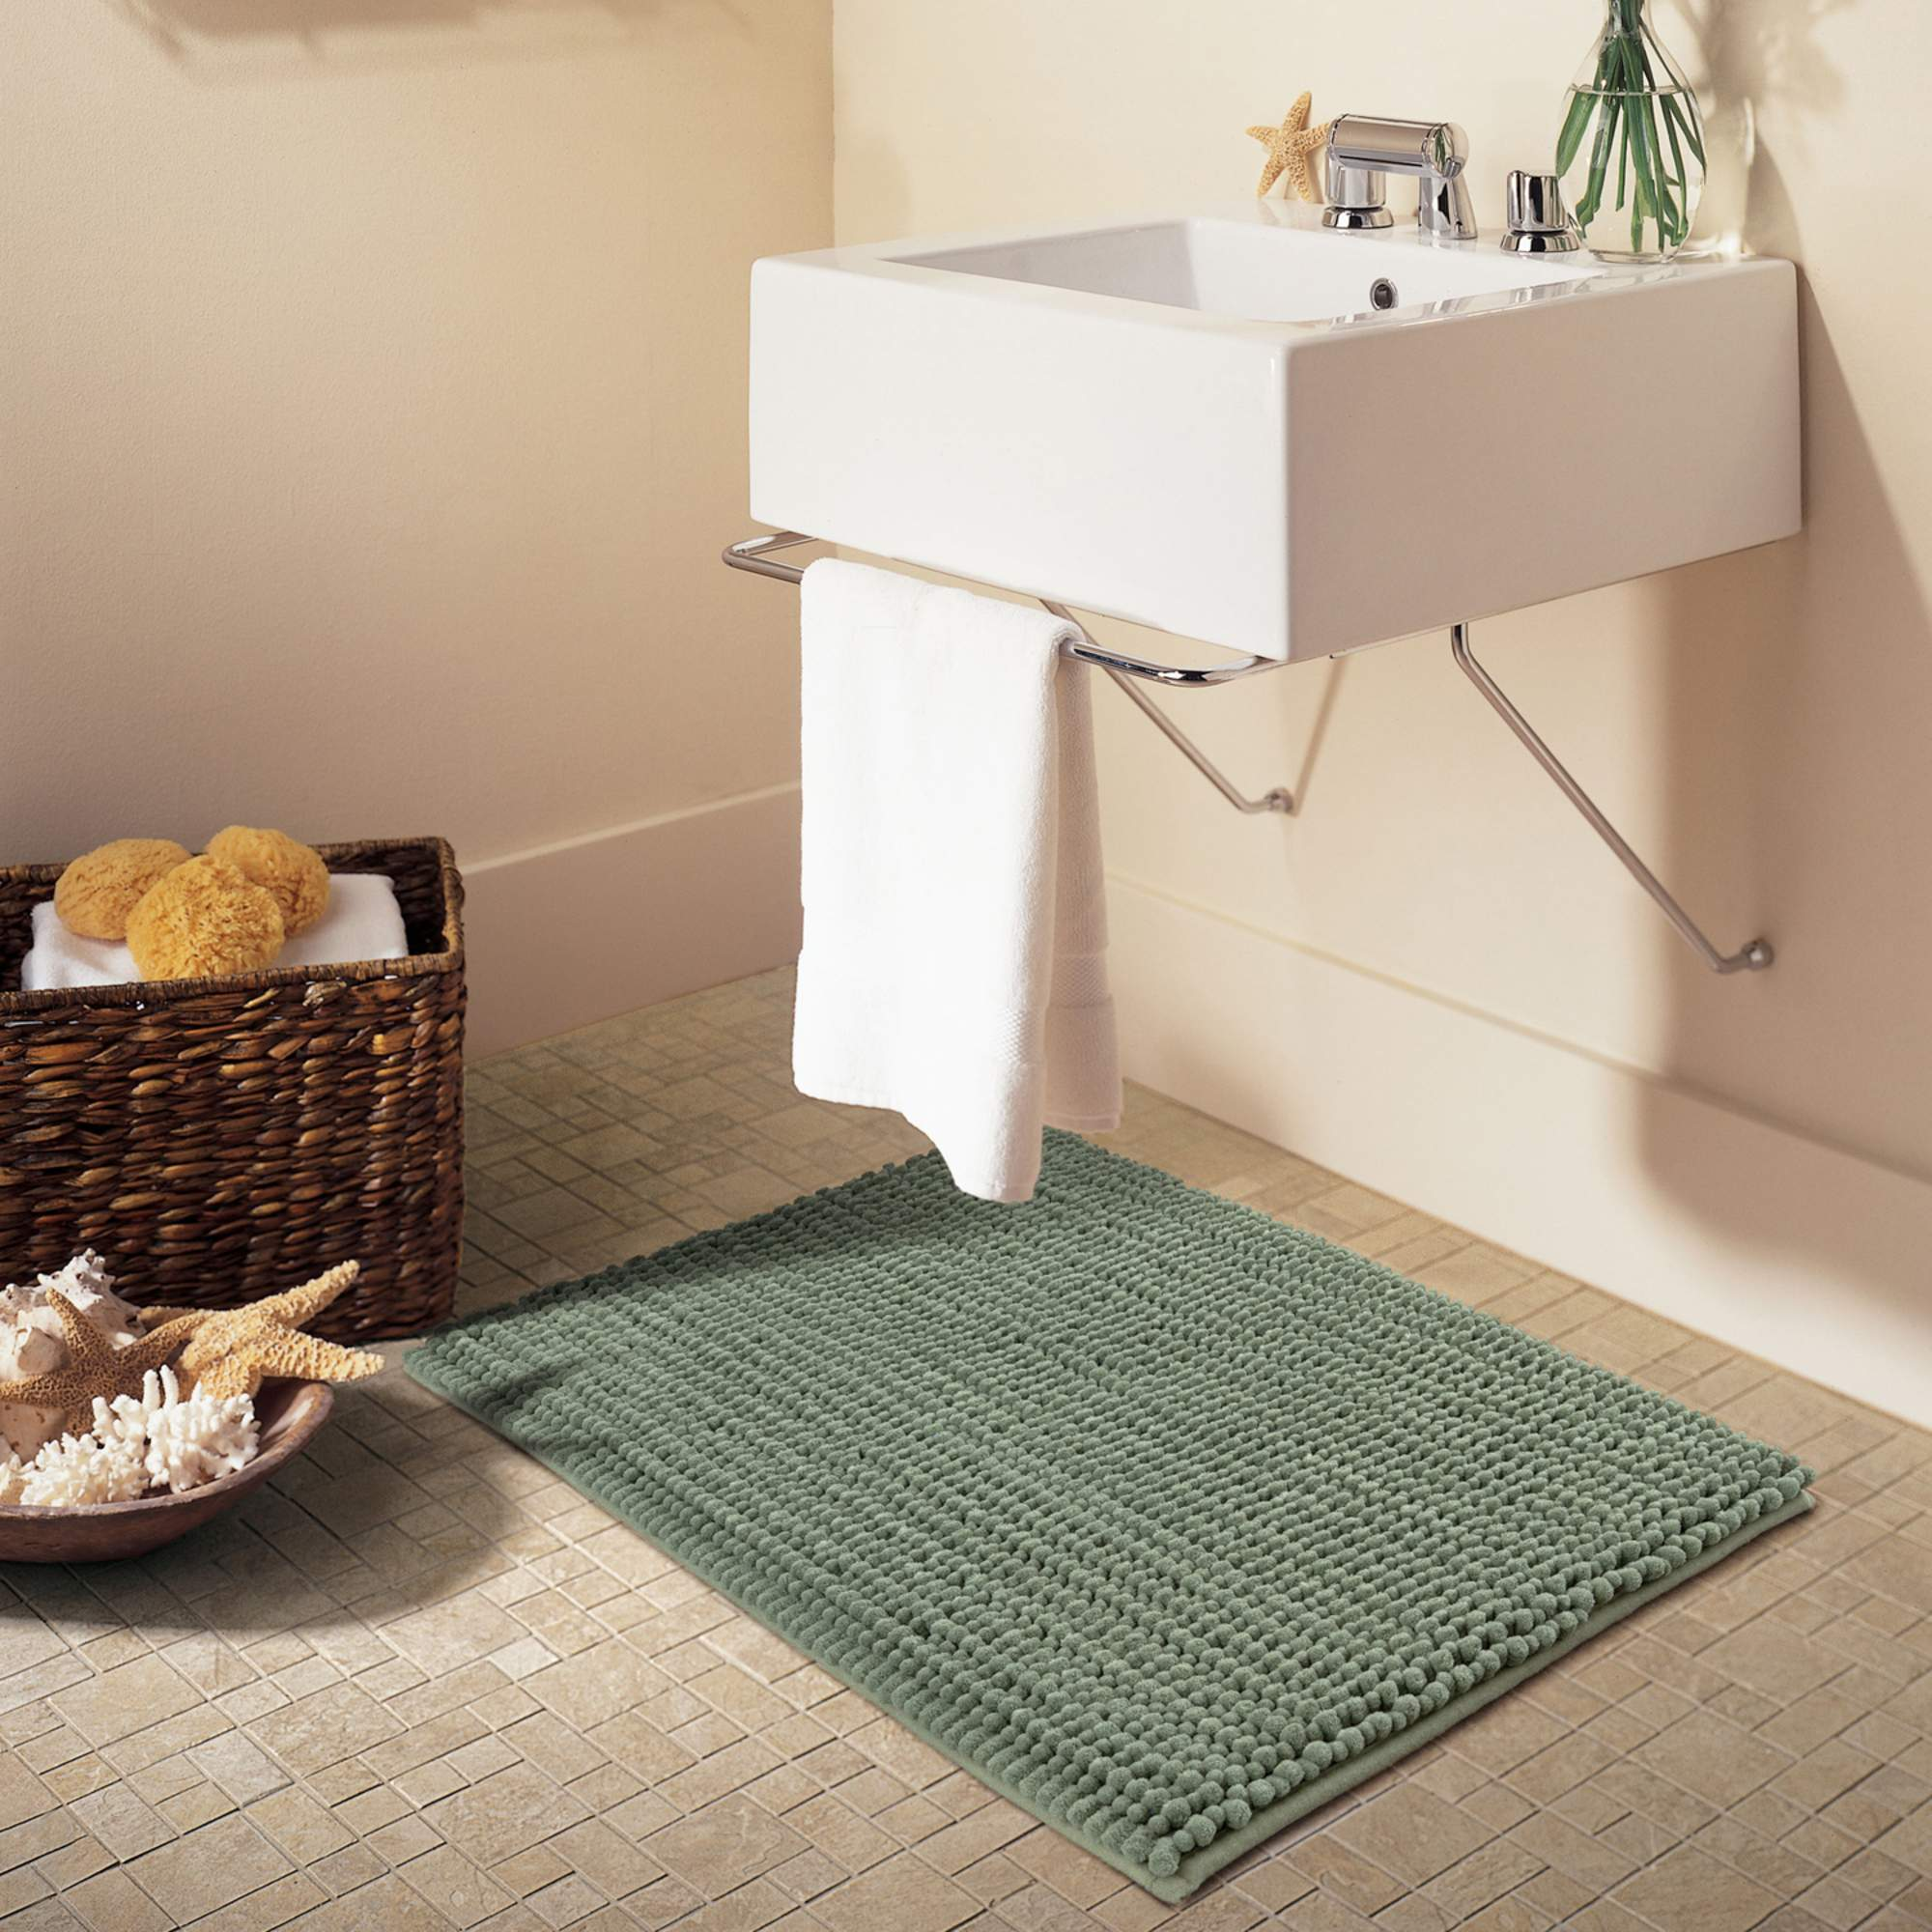 "Better Homes & Gardens Noodle Memory Foam Bath Rug, 20"" x 34"", Terrance Green"